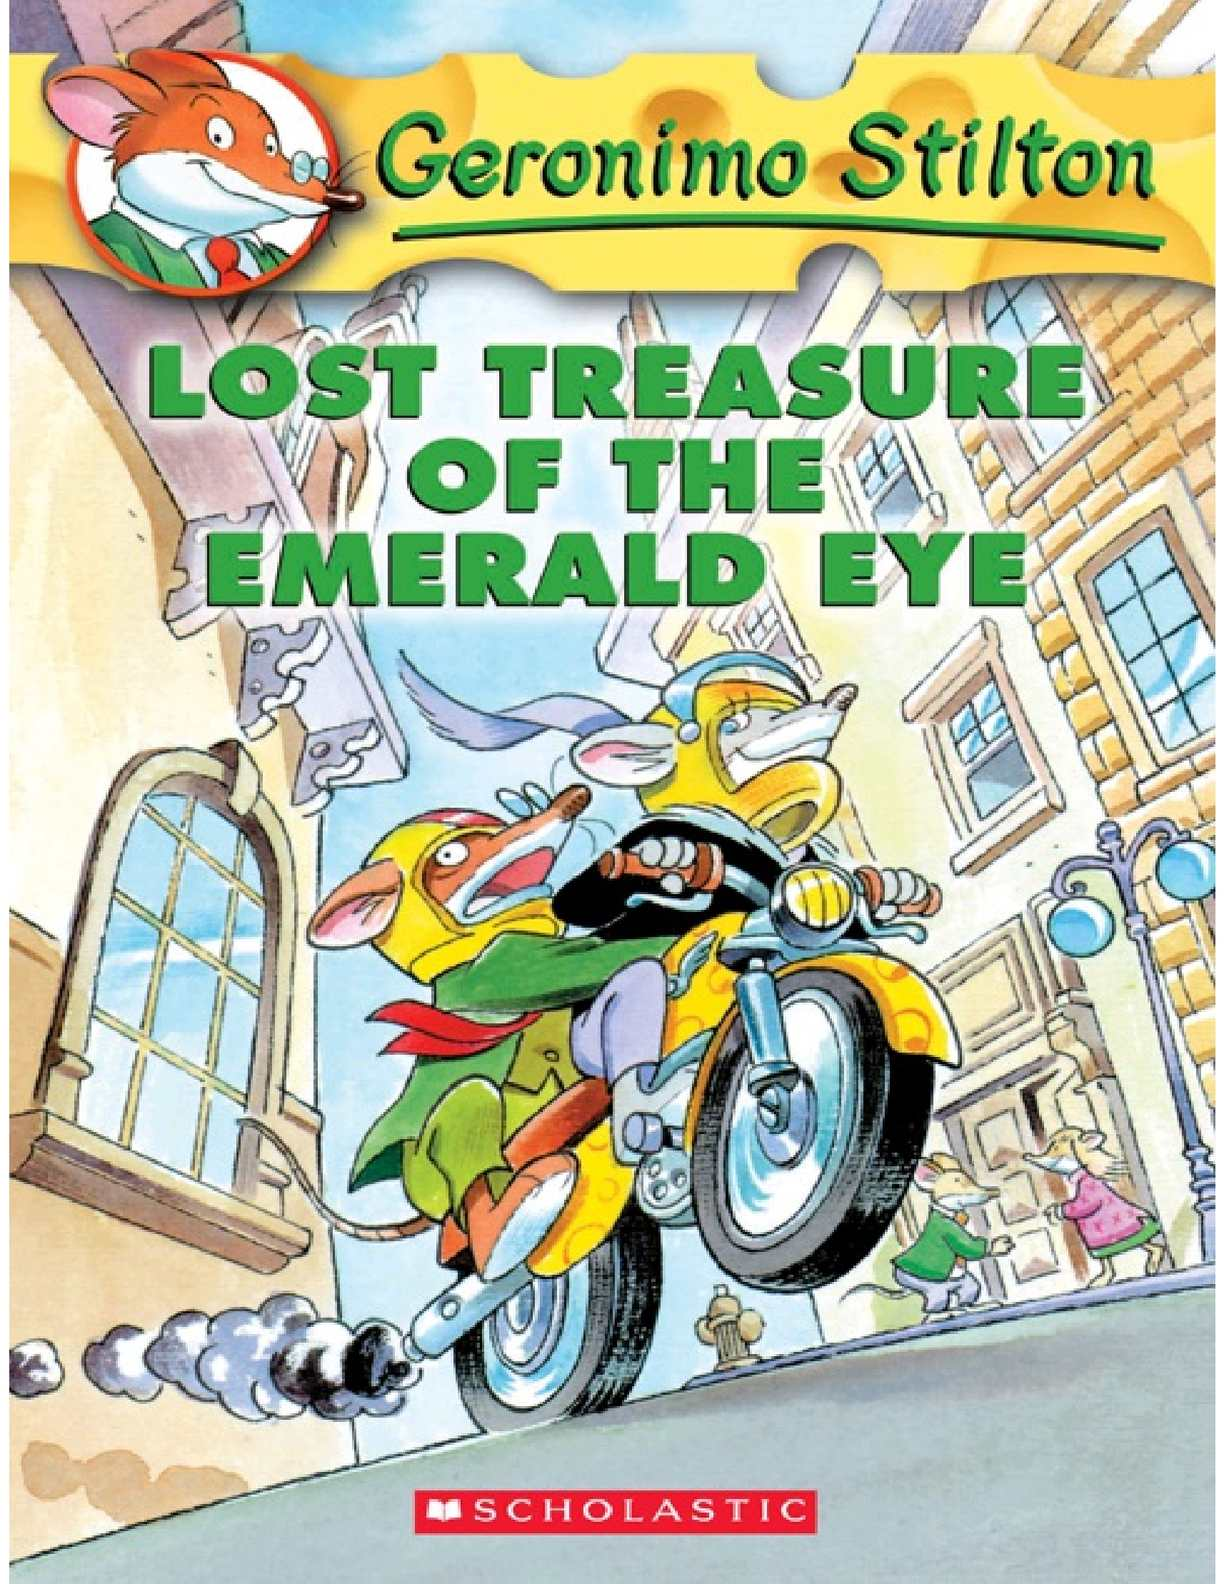 Geronimo Stilton Pdf